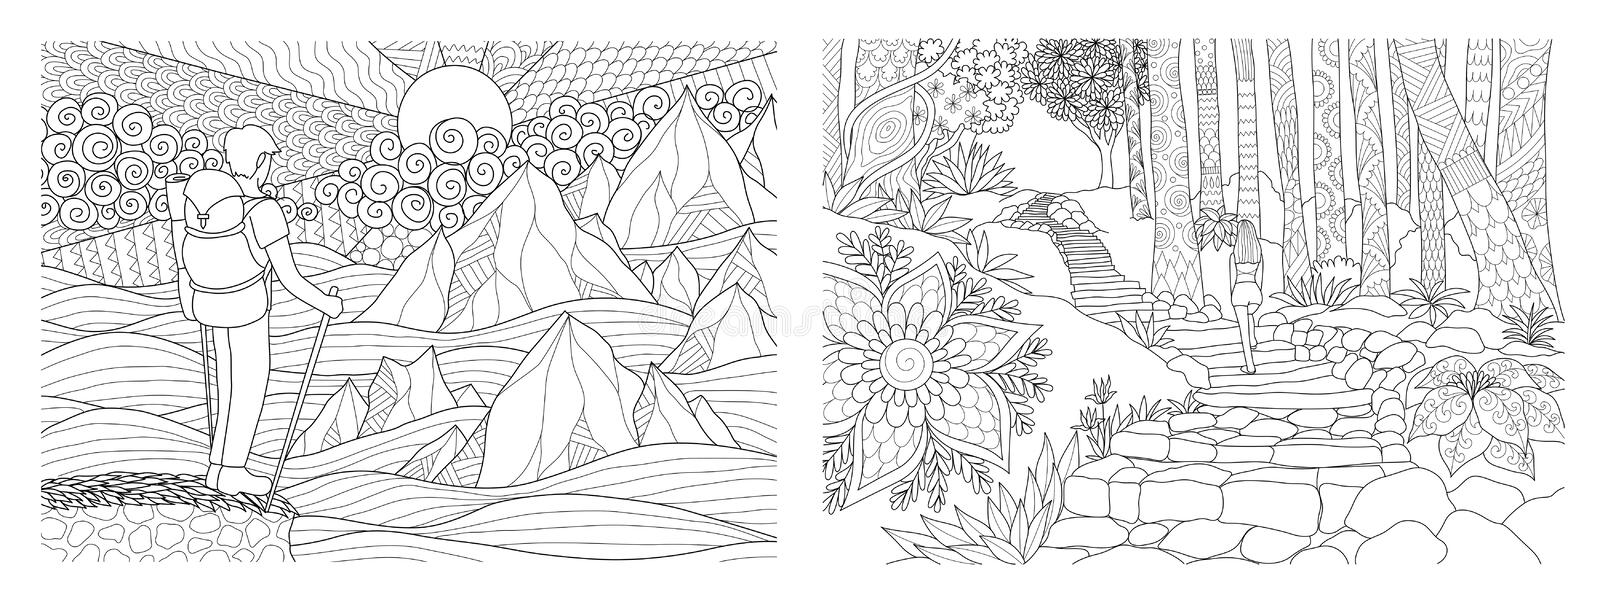 Traveling in nature adult coloring pages collection. Vector illustration stock illustration